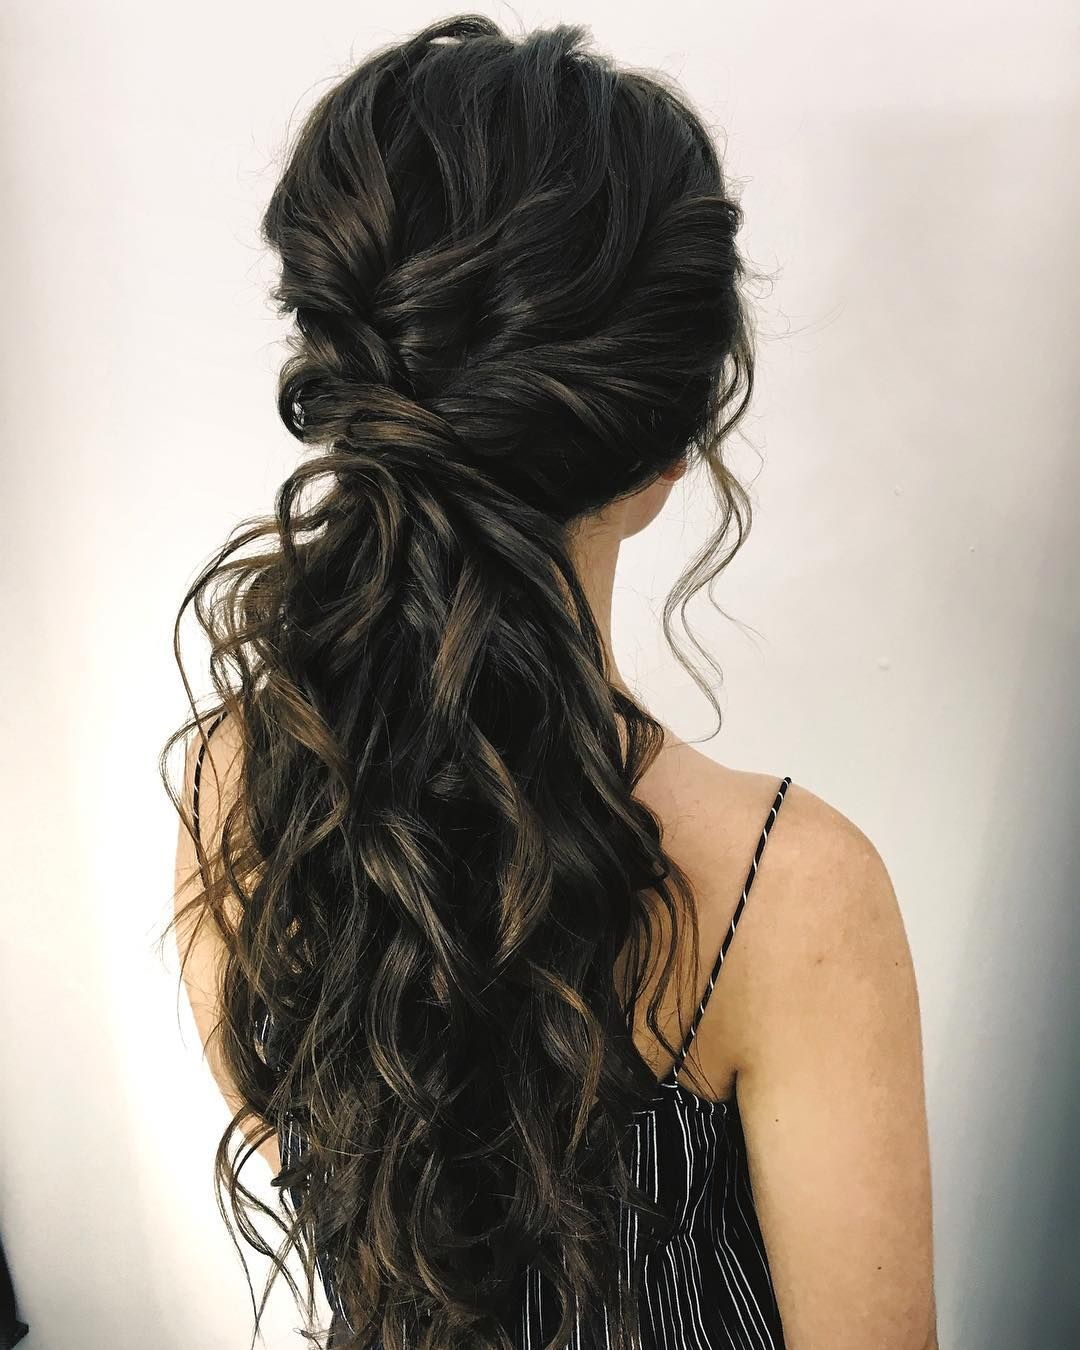 87 Fabulous Wedding Hairstyles For Every Wedding Dress Neckline Strapless Dress Hairstyles Simple Wedding Hairstyles Hair Styles